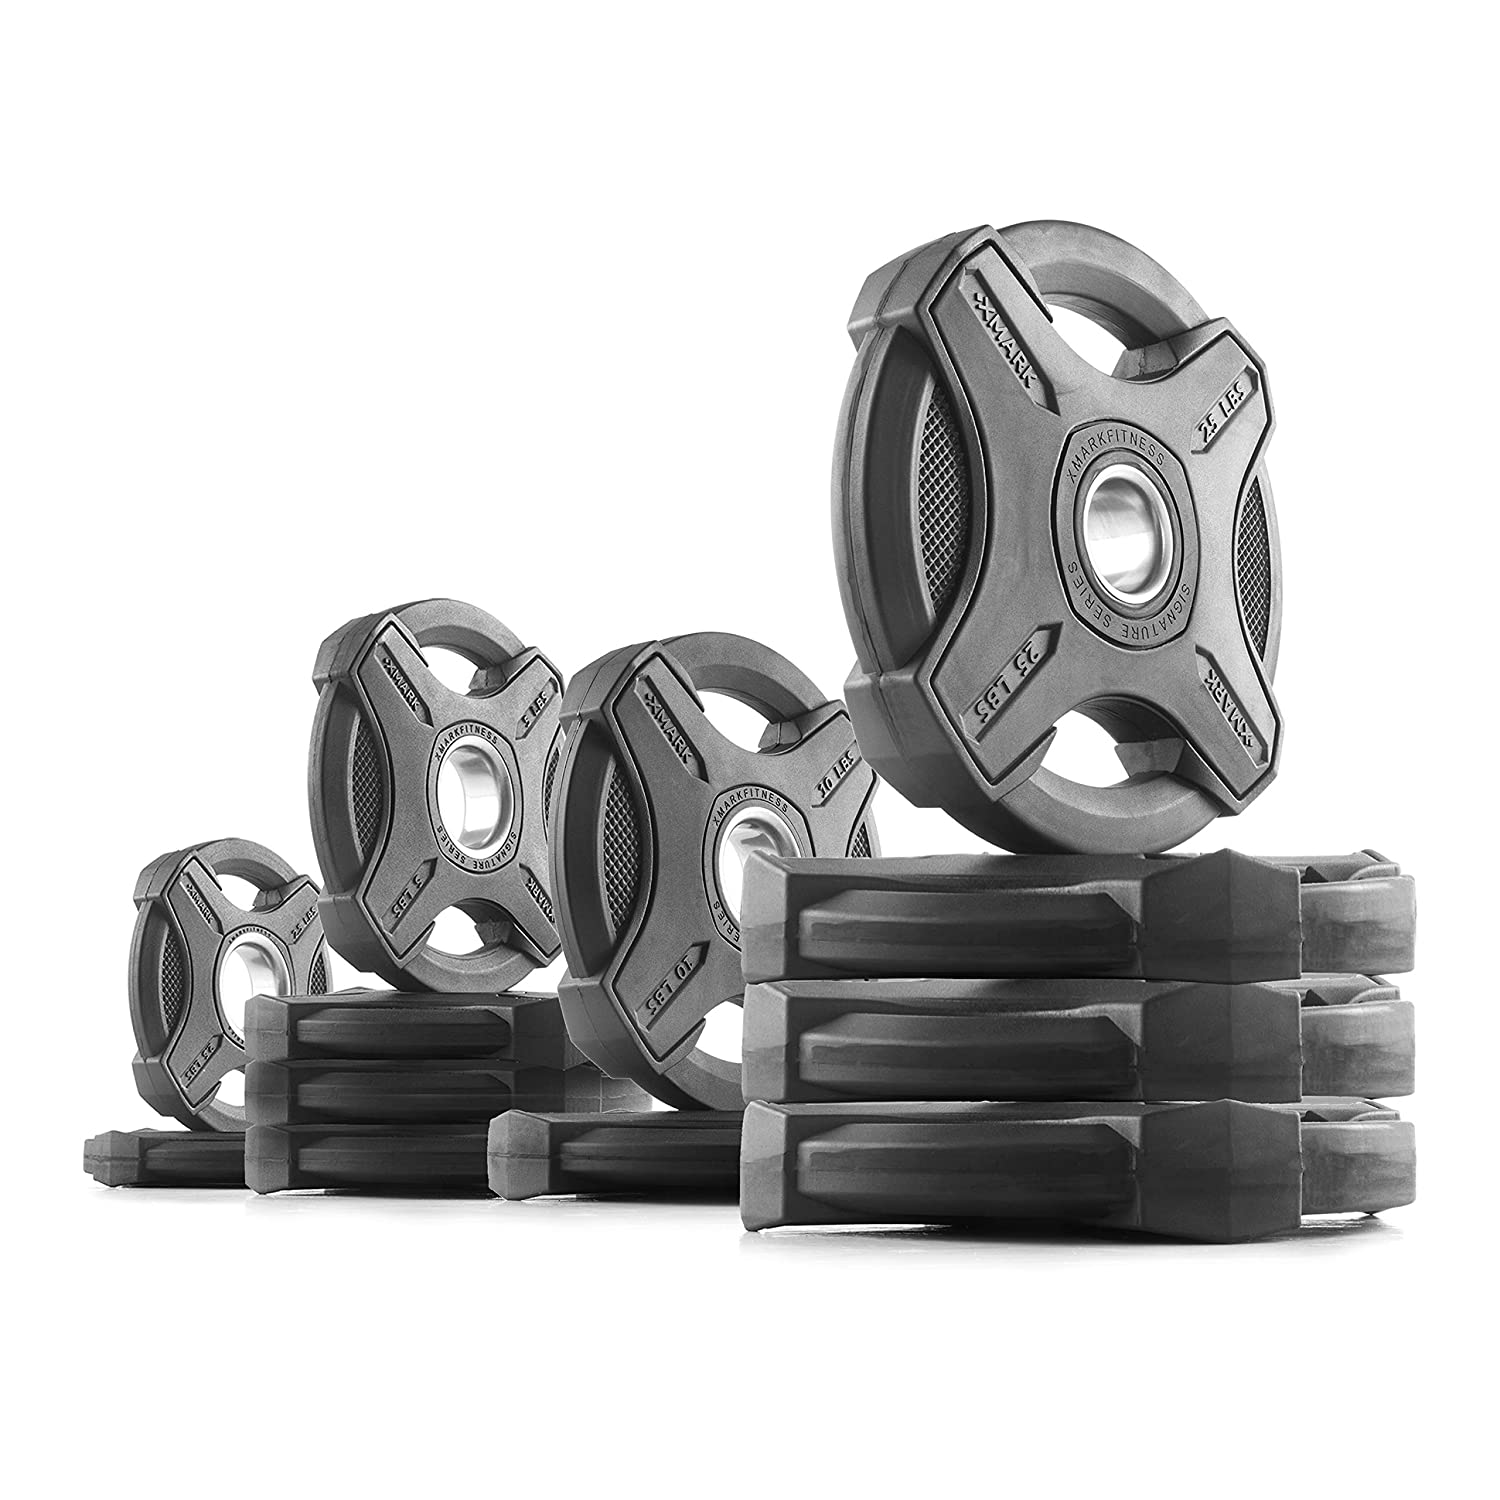 XMark Signature Plates, One-Year Warranty, Olympic Weight Plates, Cutting-Edge Design, Sets